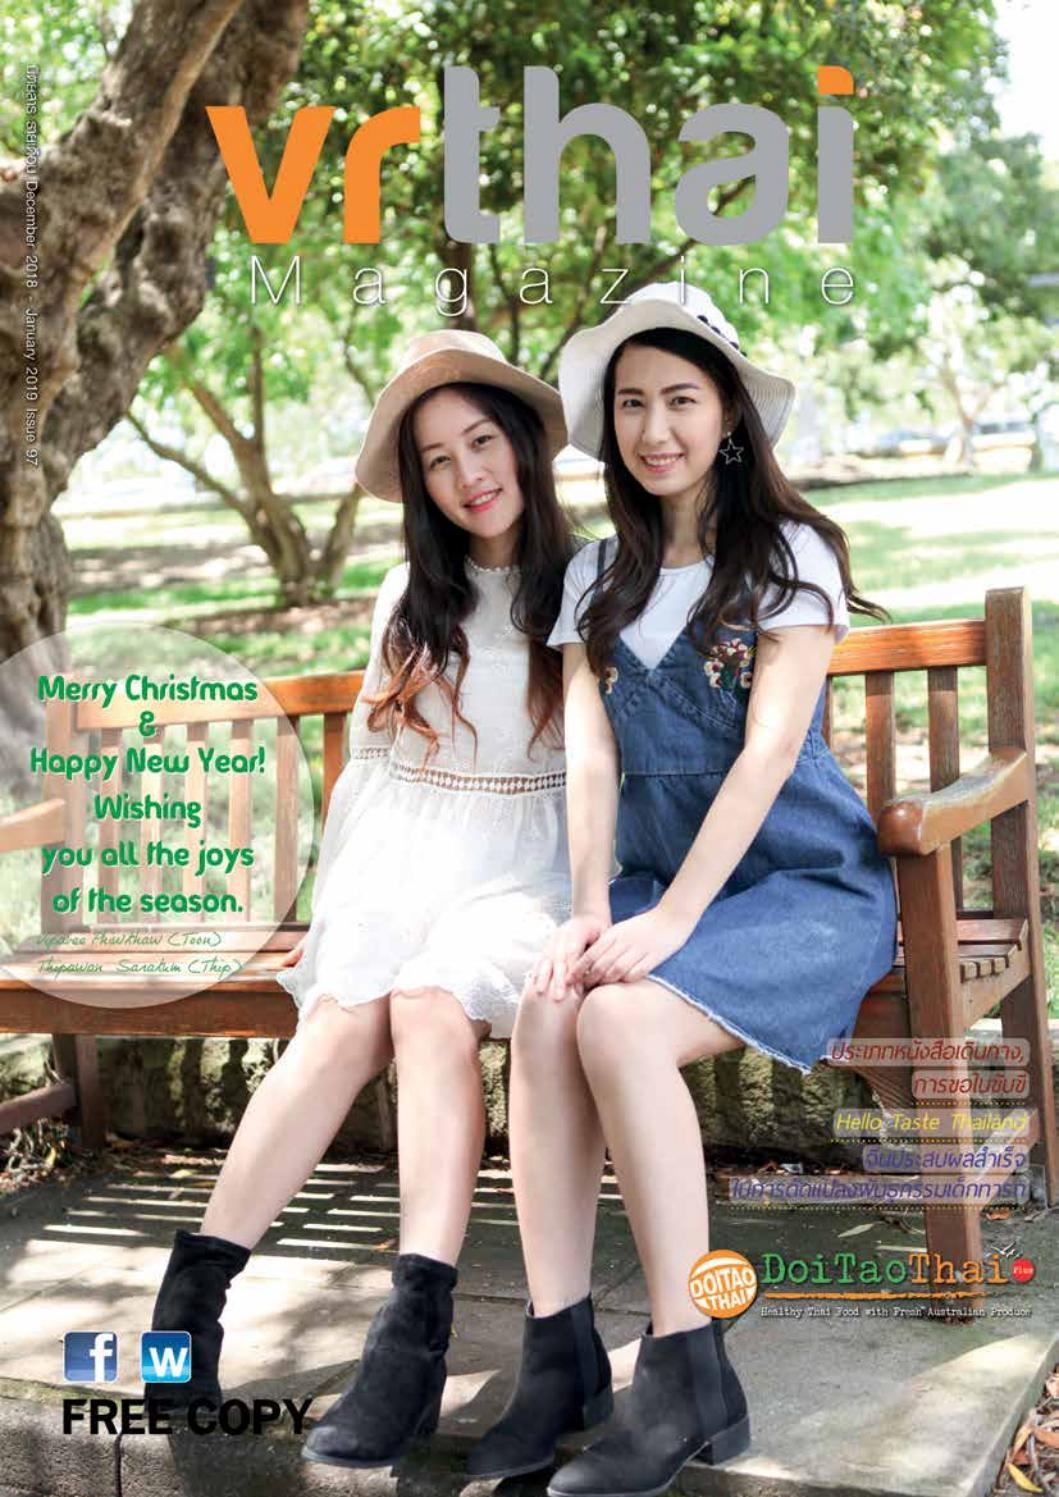 VR Thai Magazine Issue 97